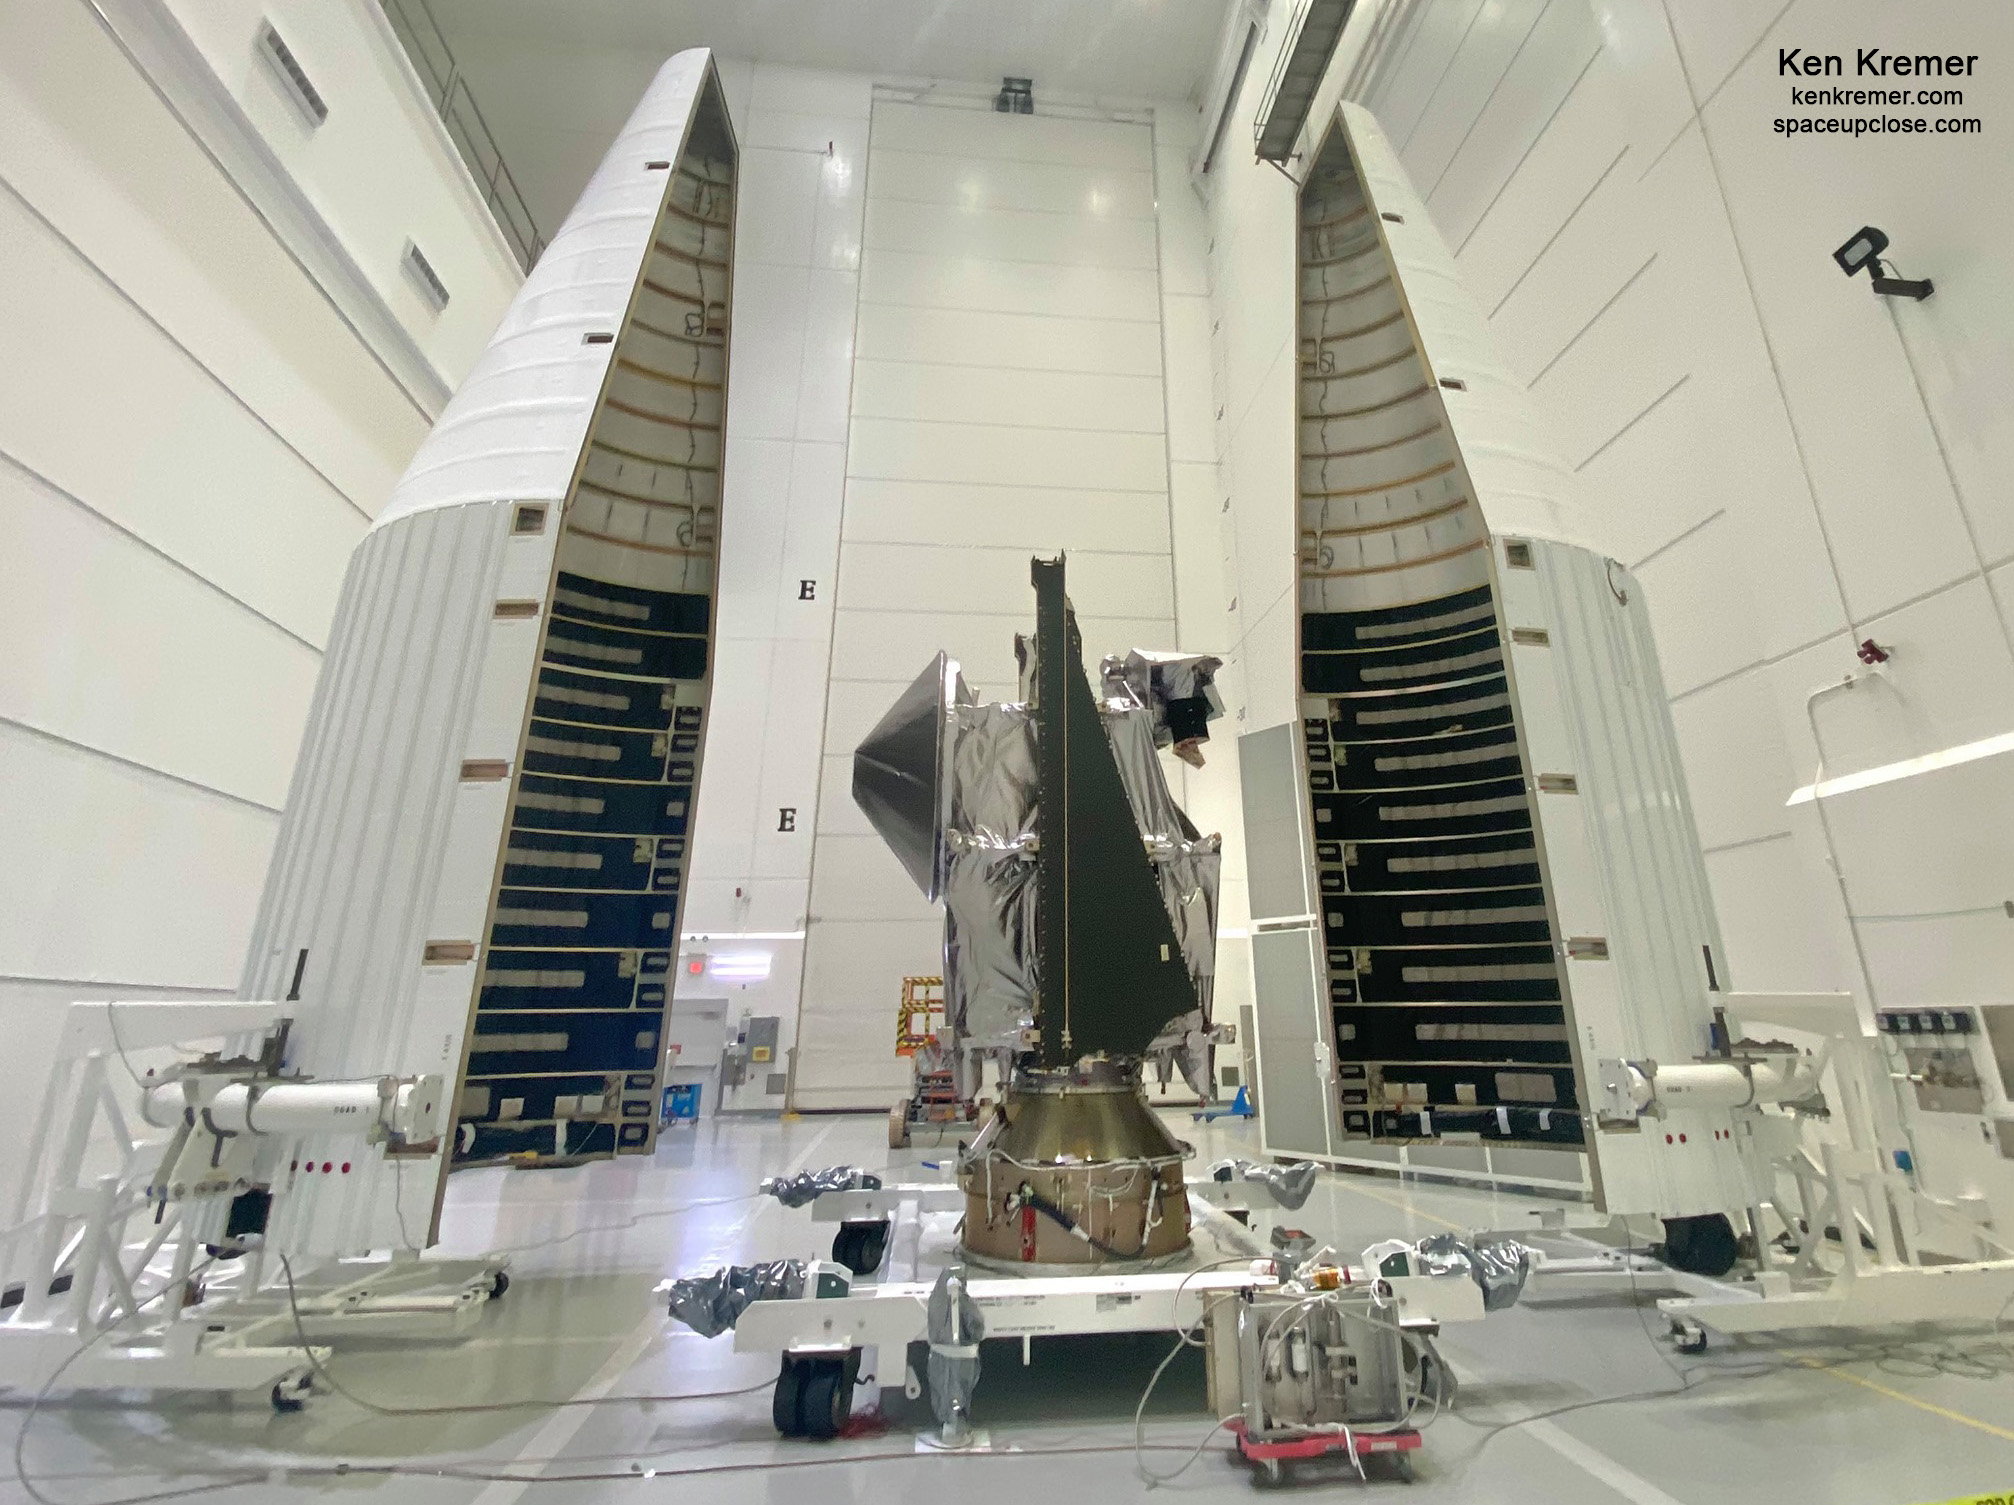 UpClose with NASA Lucy Asteroid Explorer Spacecraft in the Cleanroom: Photos